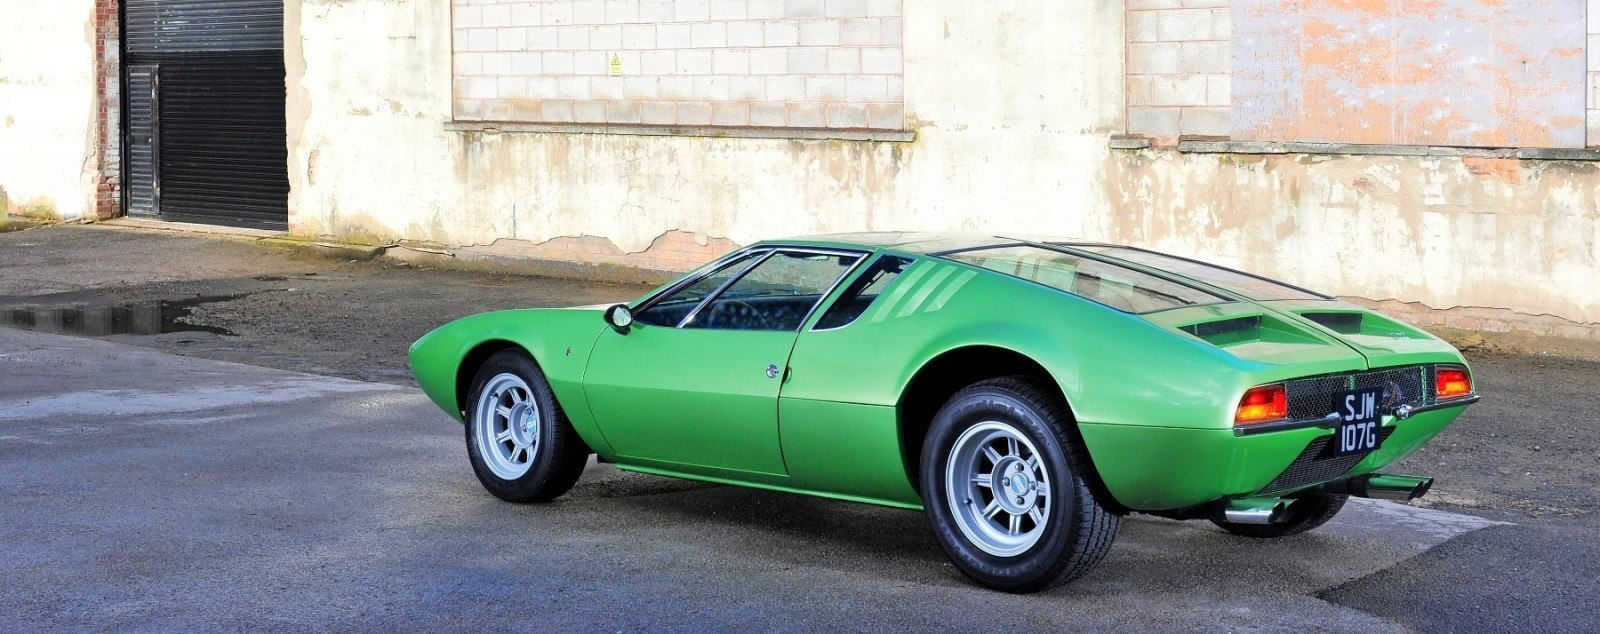 RM Monaco 2014 Highlights - 1969 DeTomaso Mangusta Brings $367k of Brutal Supercar Cash 2